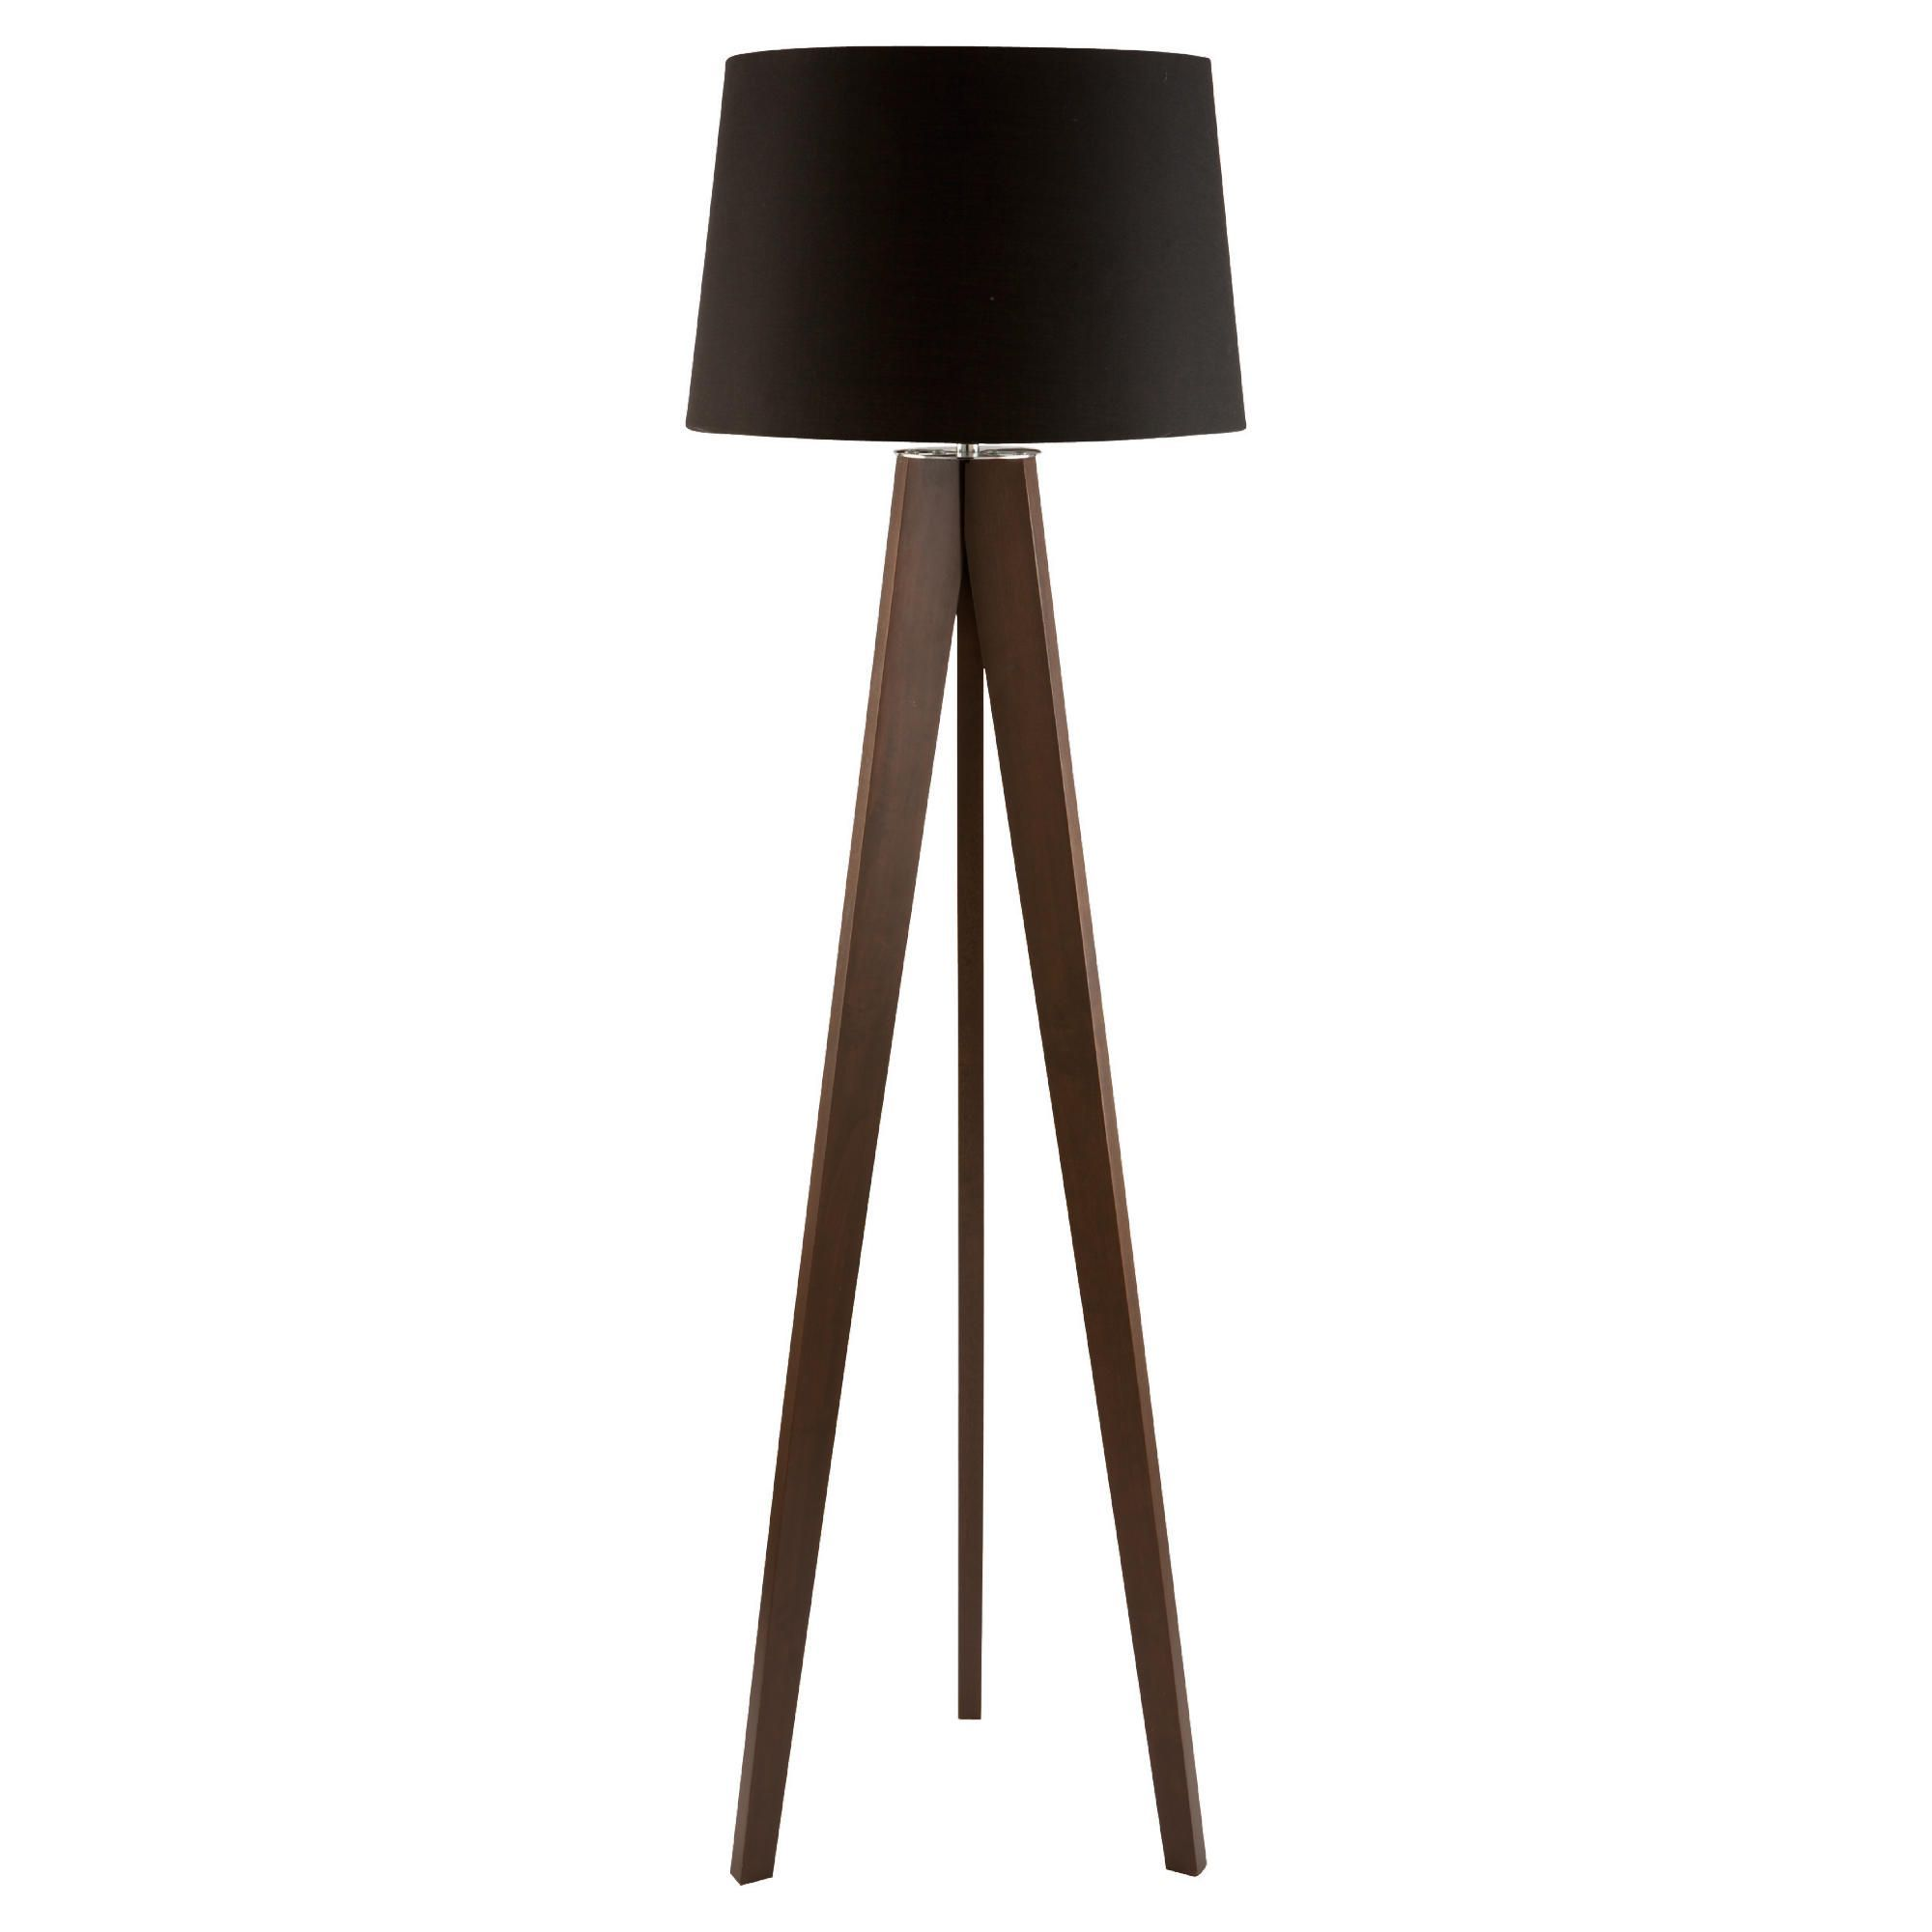 Tesco Tripod Wooden Floor Lamp Dark Wood Black Shade